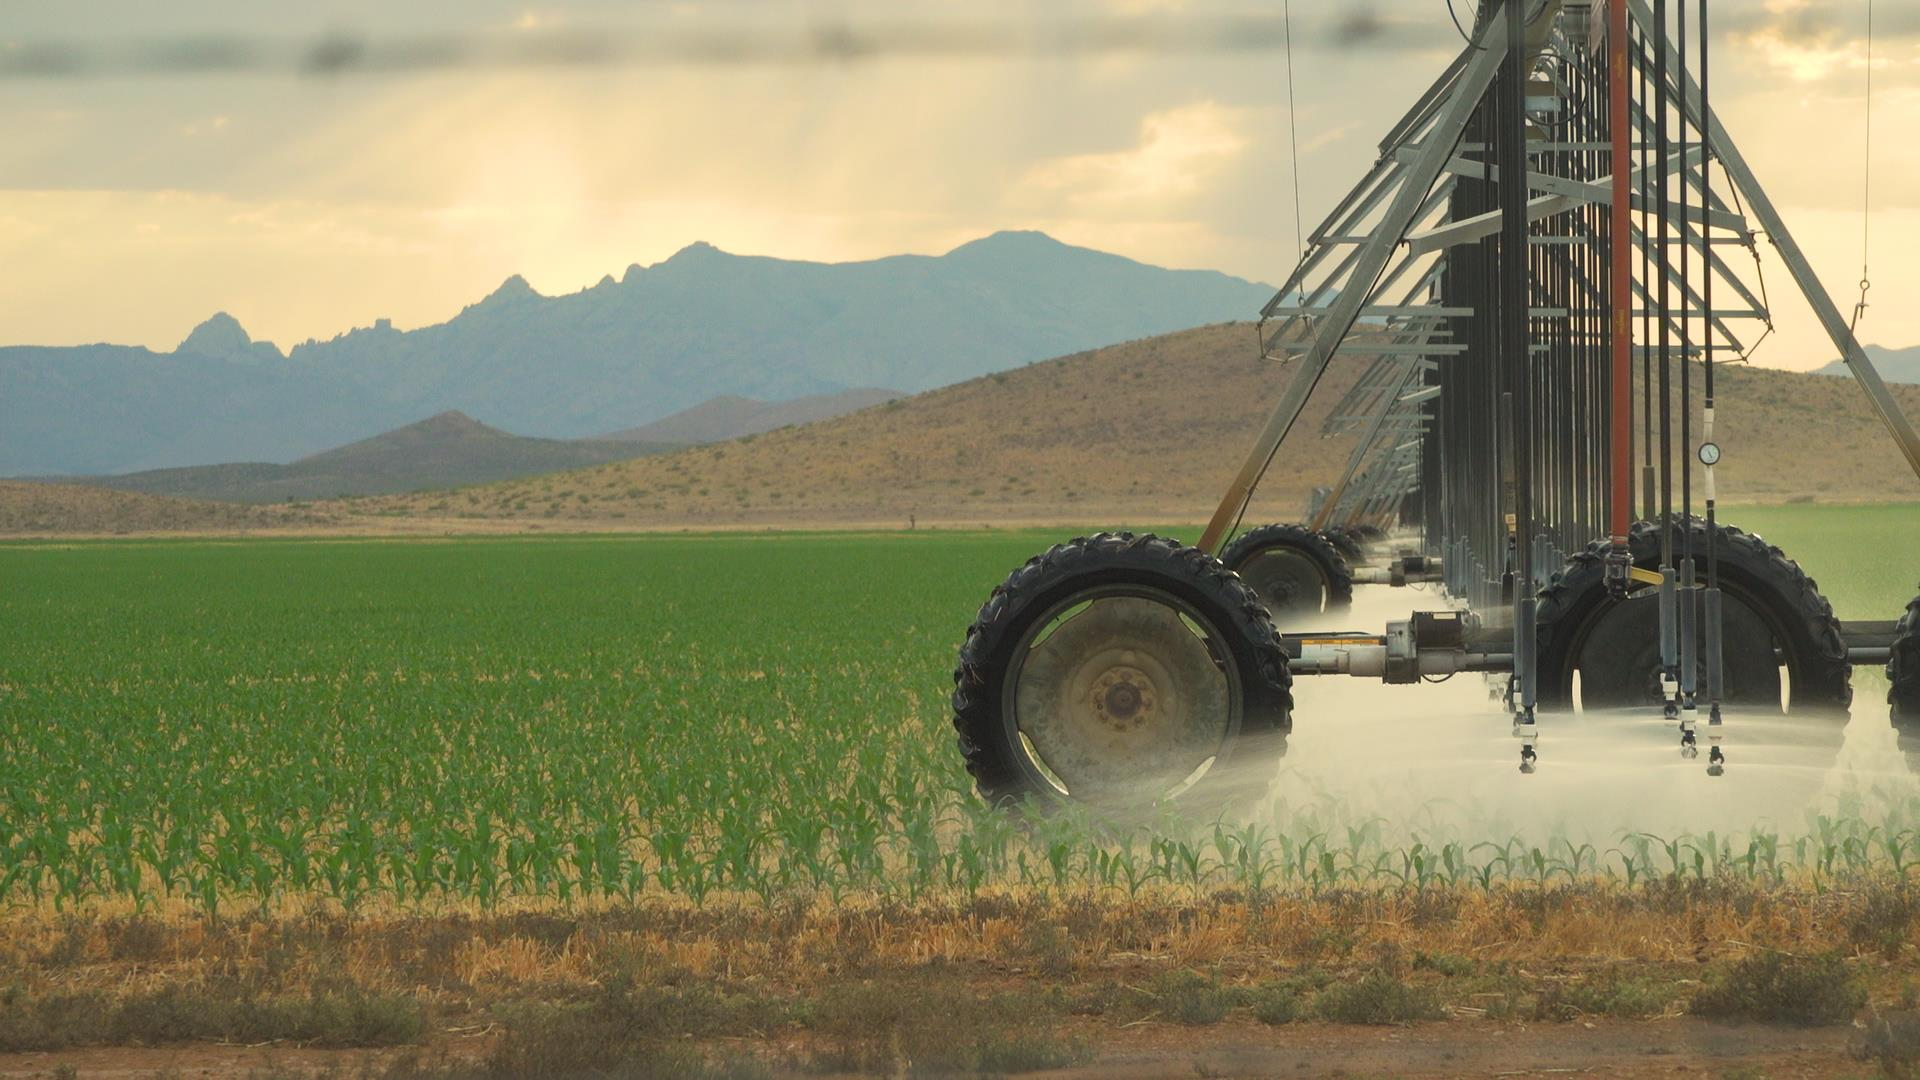 Draining Arizona: Residents say corporate mega-farms are drying up their wells